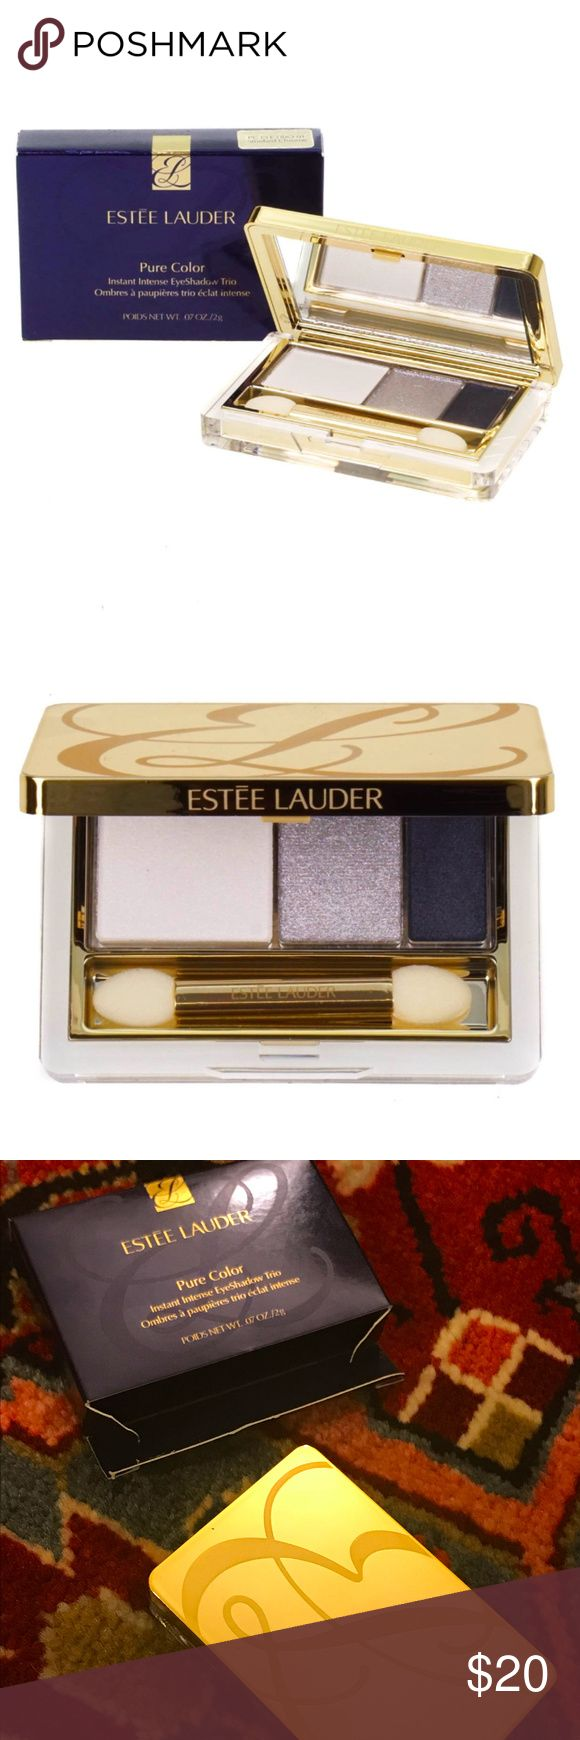 """Estee Pure Color Instant Intensive Eyeshadow Trio [New.Full Size.Boutique] Air-light shadows illuminate with pure brilliance and instant colour intensity. Total eye look trio highlights, defines and lines. Provides amplified colour with multi-metallic effects-from shimmer to high metallic brilliance. Lasts 10-hours. Apply dry, or wet to intensify. Sleek compact includes applicator and mirror. Shade is """"Smoked Chrome"""". Sephora Makeup Eyeshadow"""